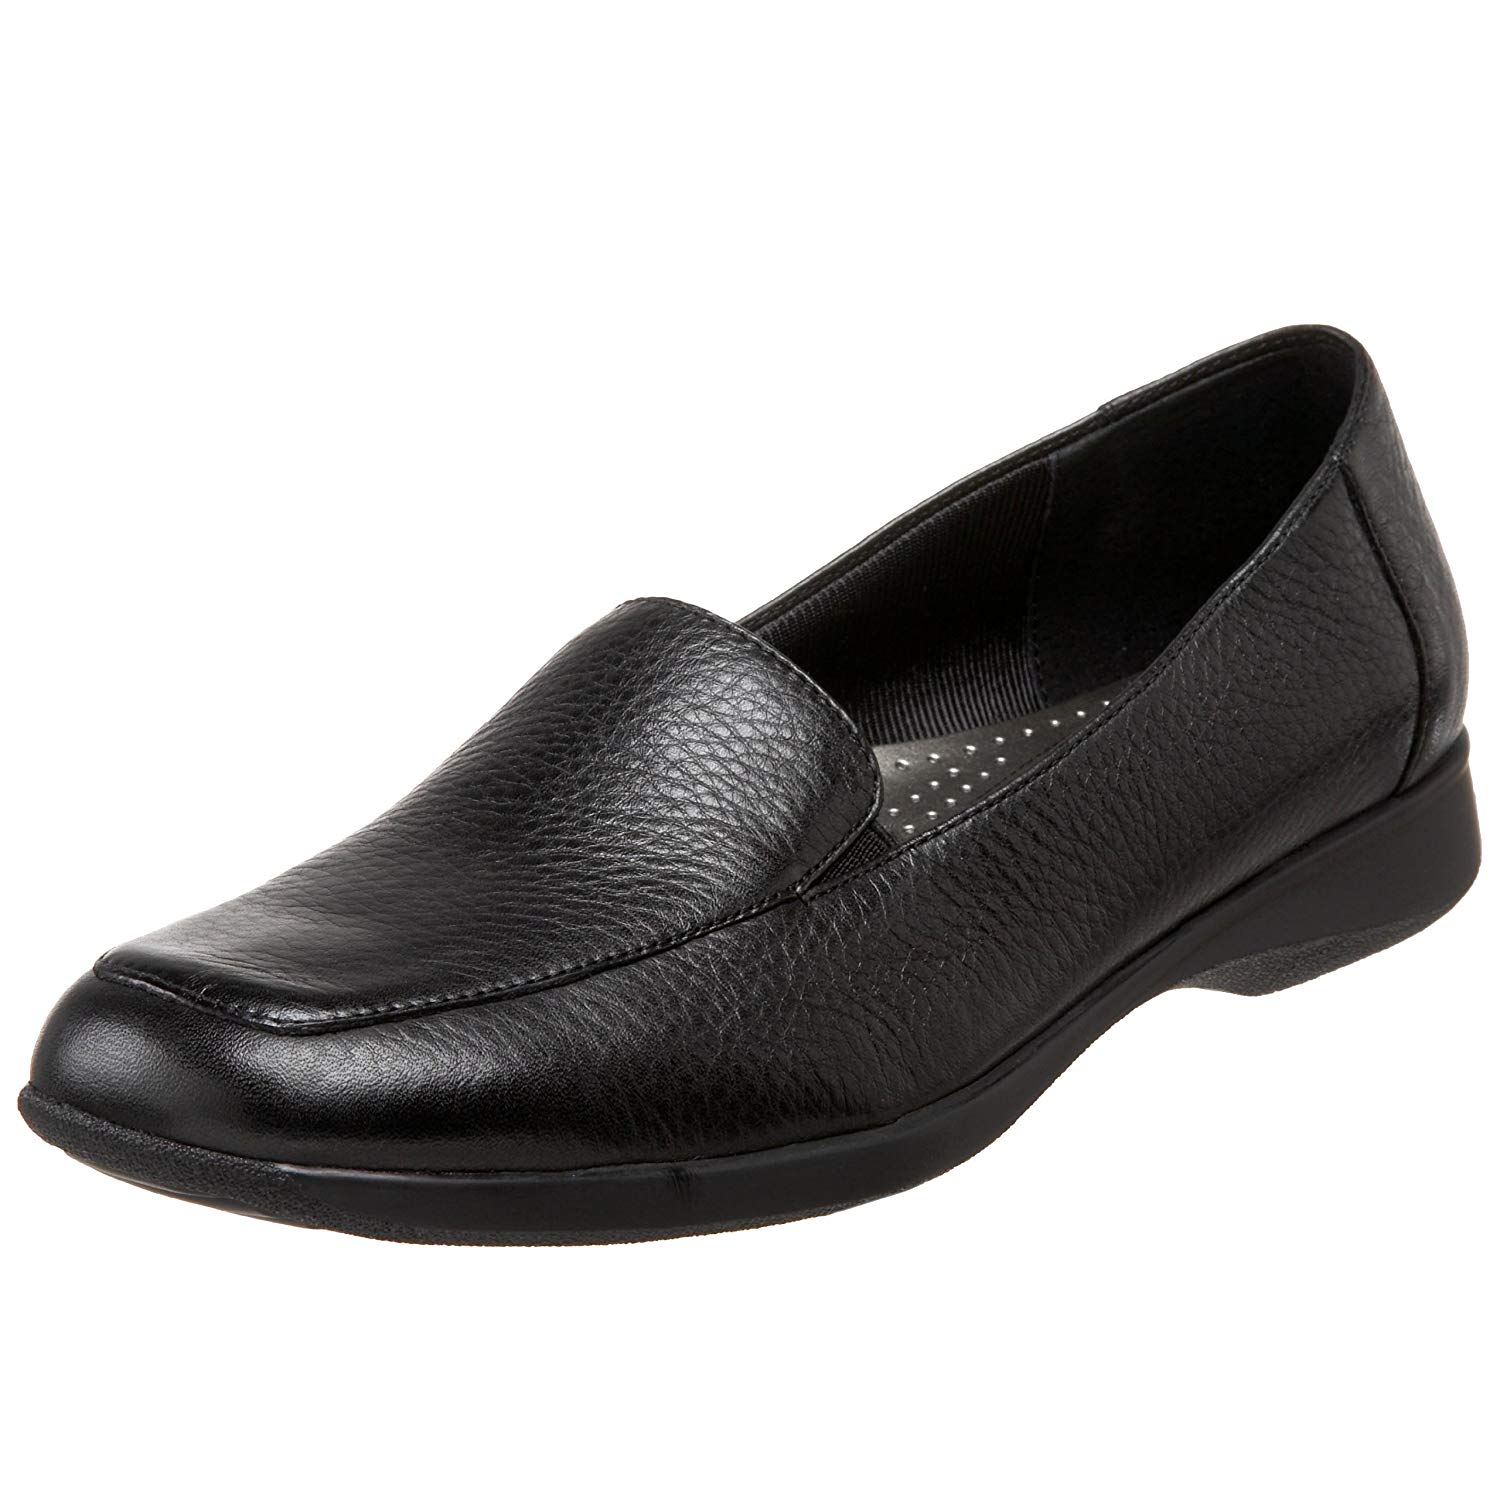 b7f149ed5a8 Details about Trotters Womens Jenn Leather Square Toe Loafers